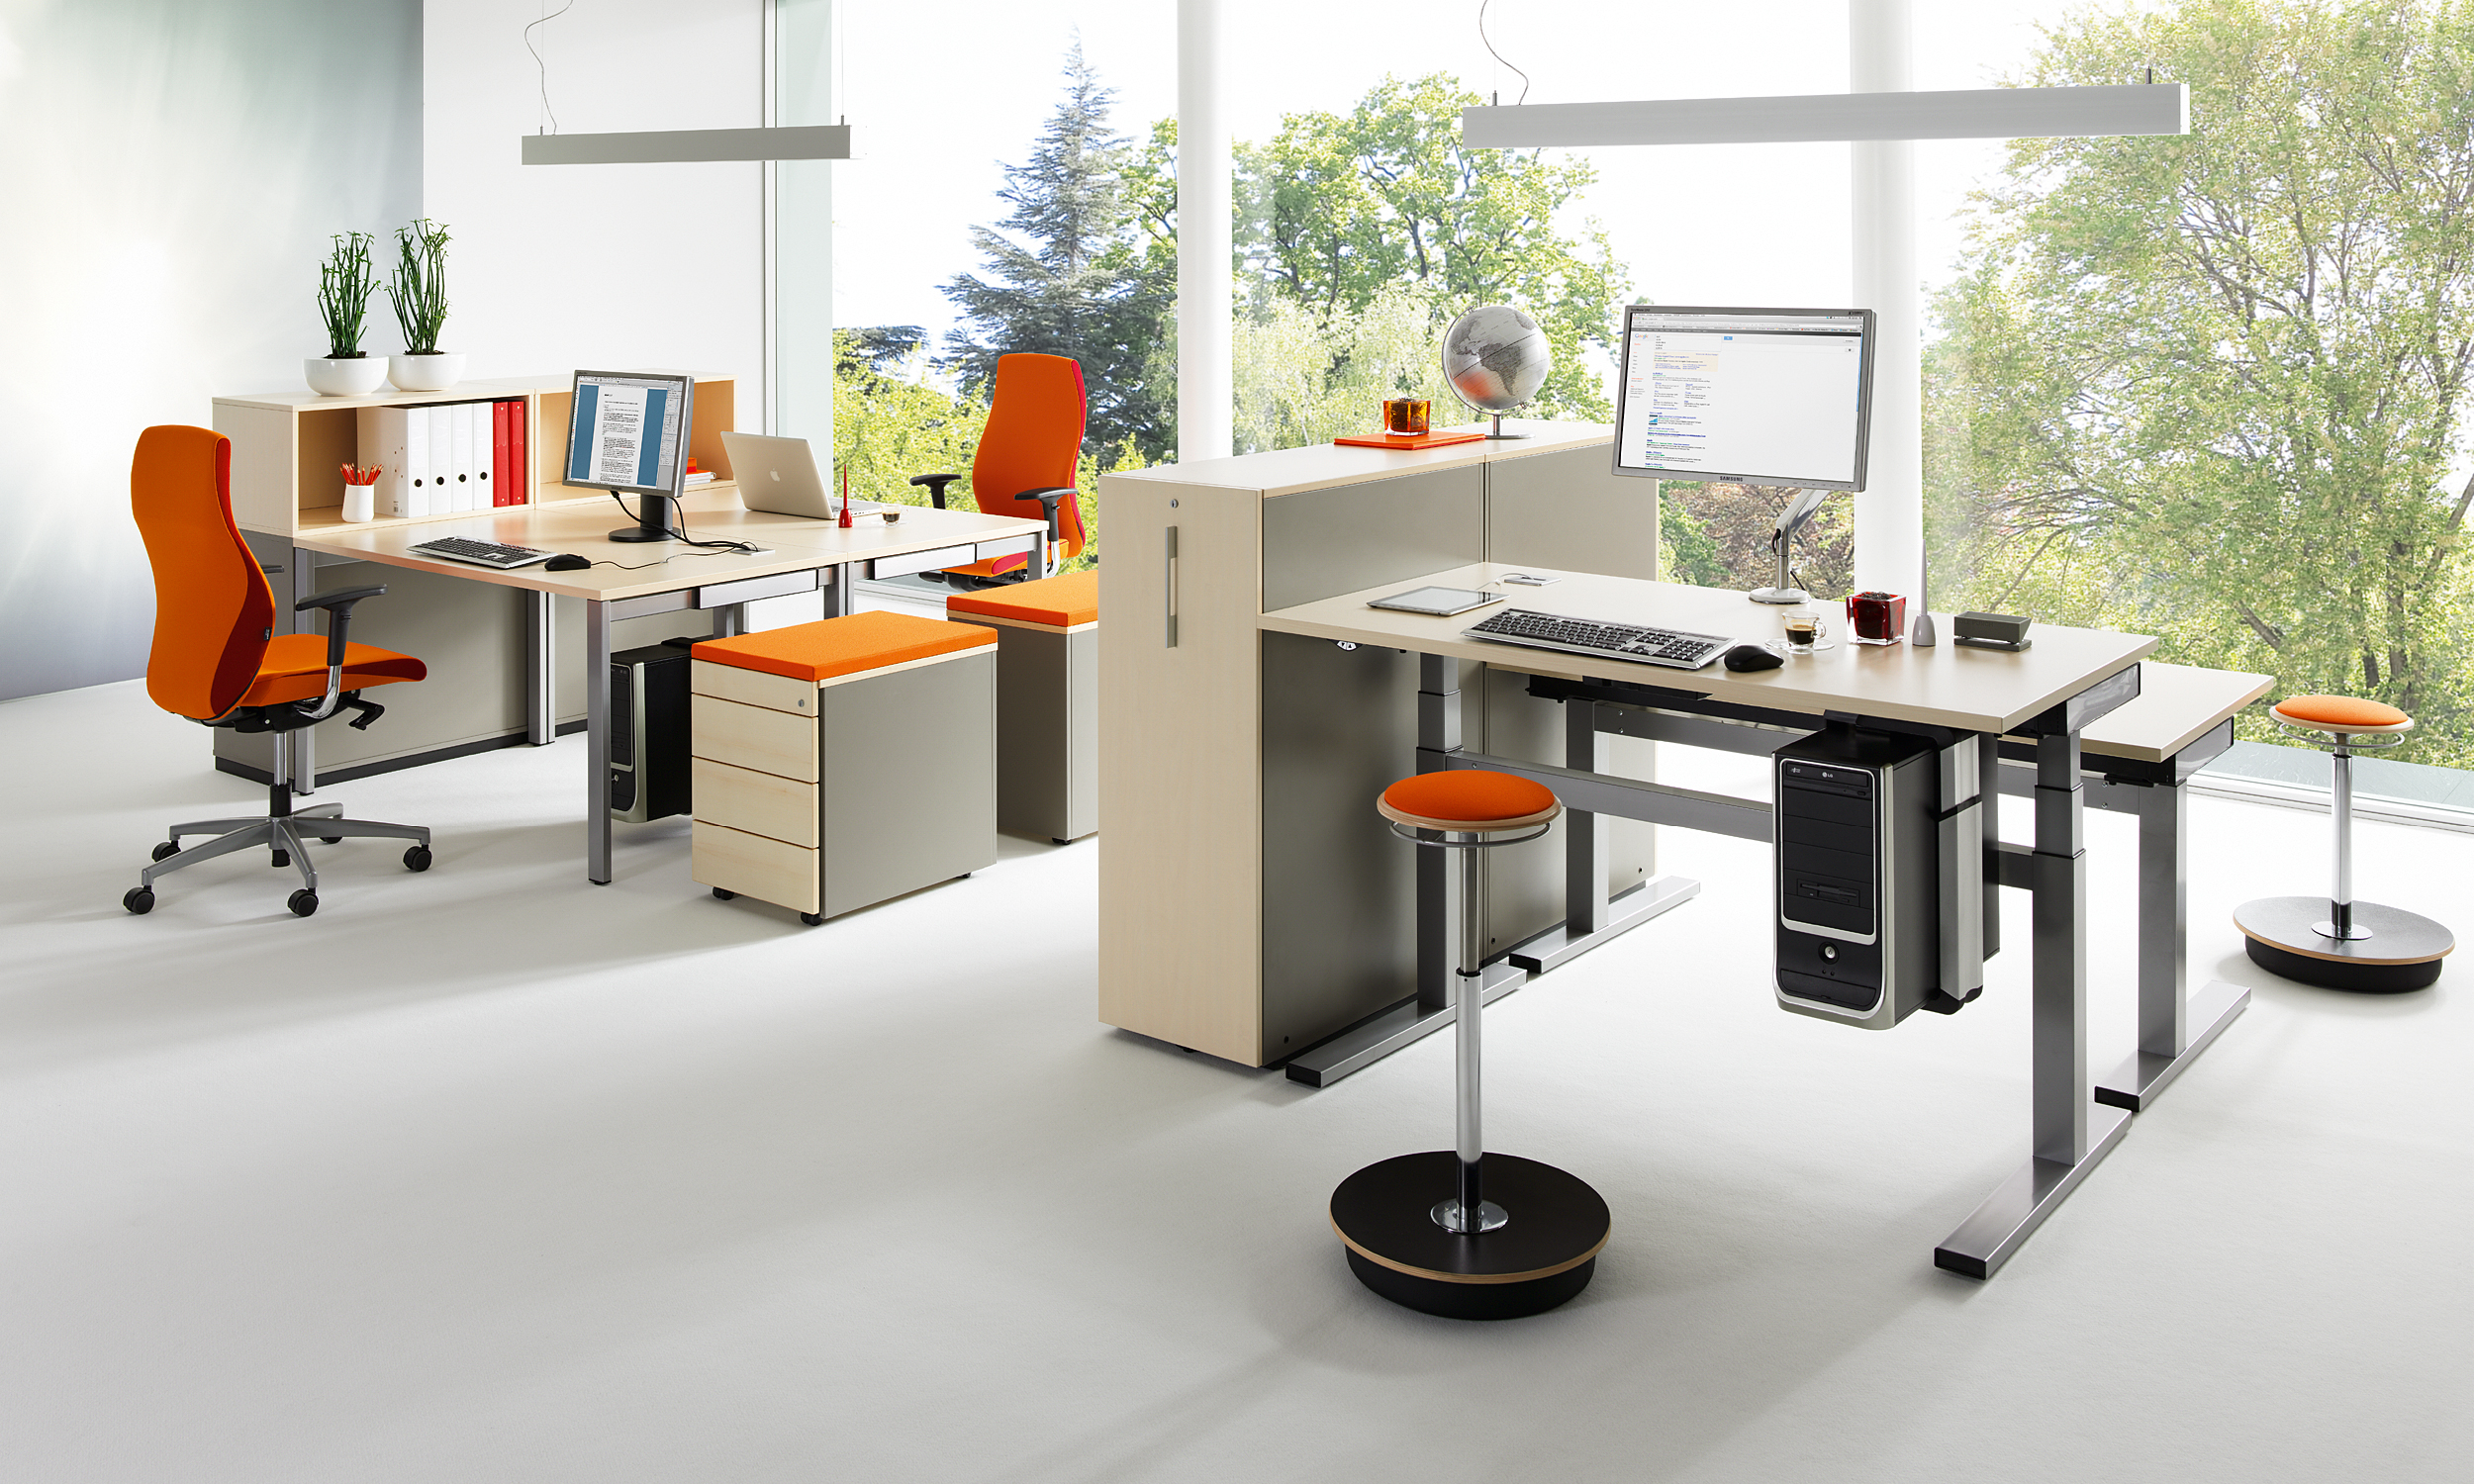 office-furniture_10-6_sqart-21